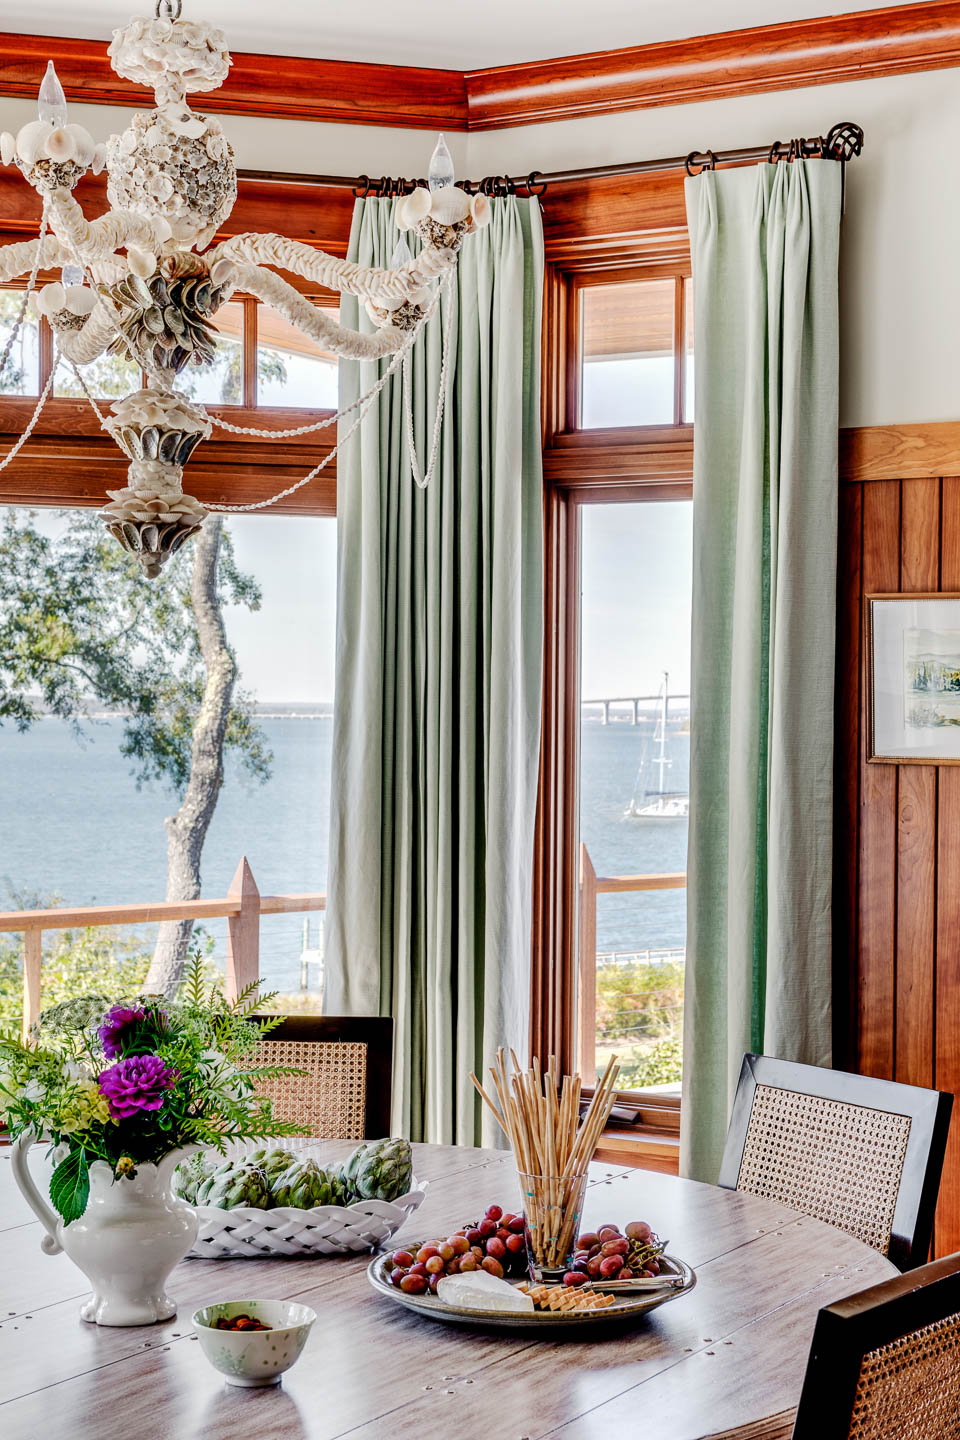 dining table, table decor, table in front of window, interior design, Rhode Island, New England